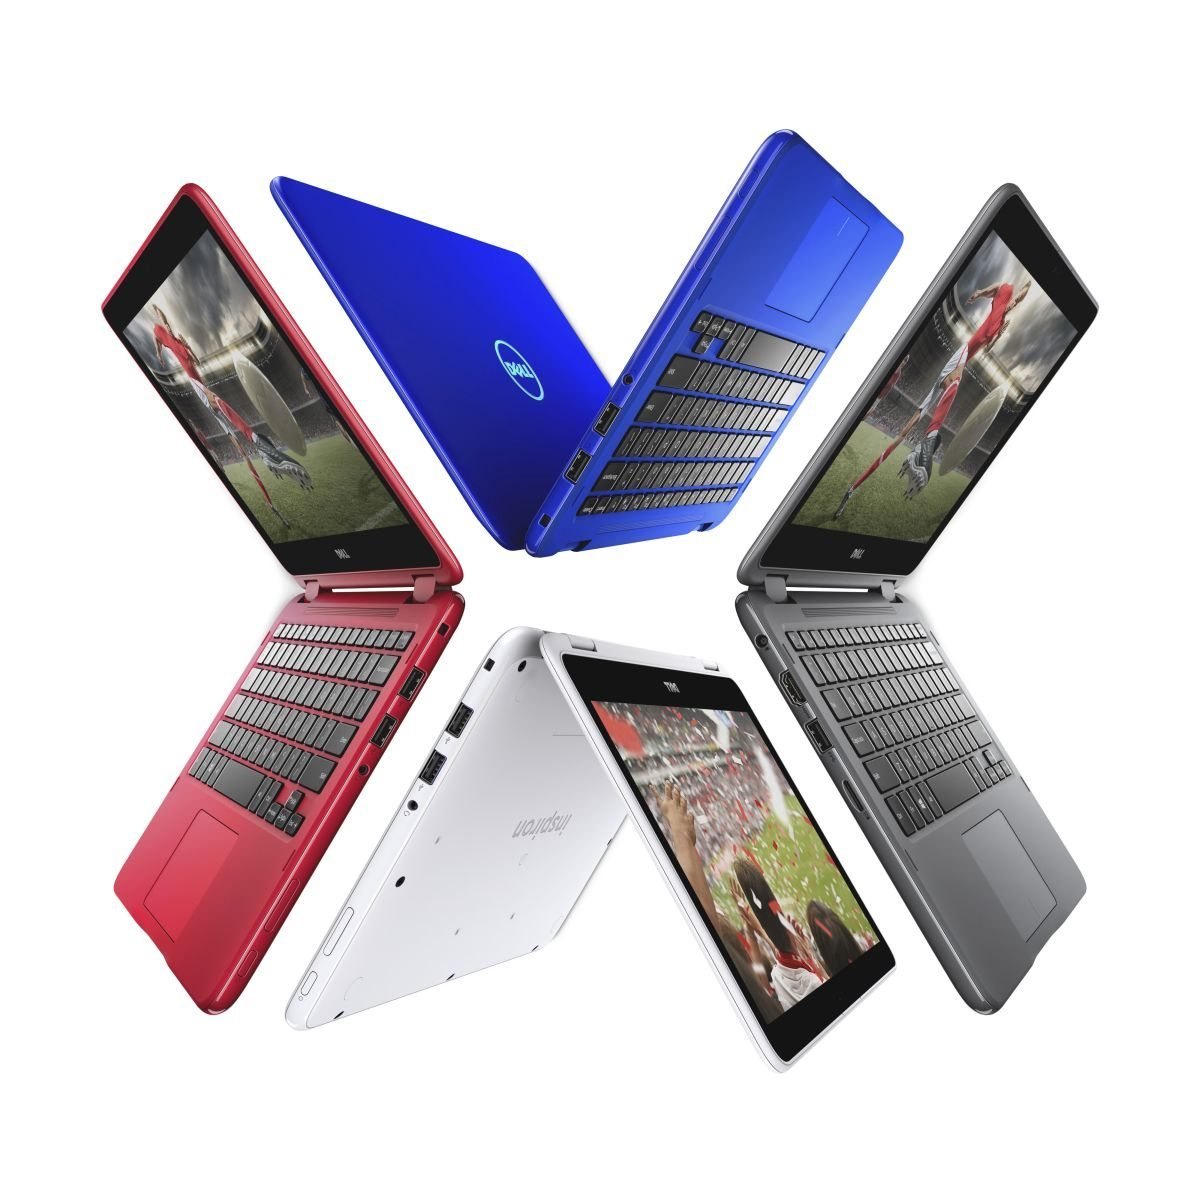 Inspiron 11 3000 Series Touch Notebooks